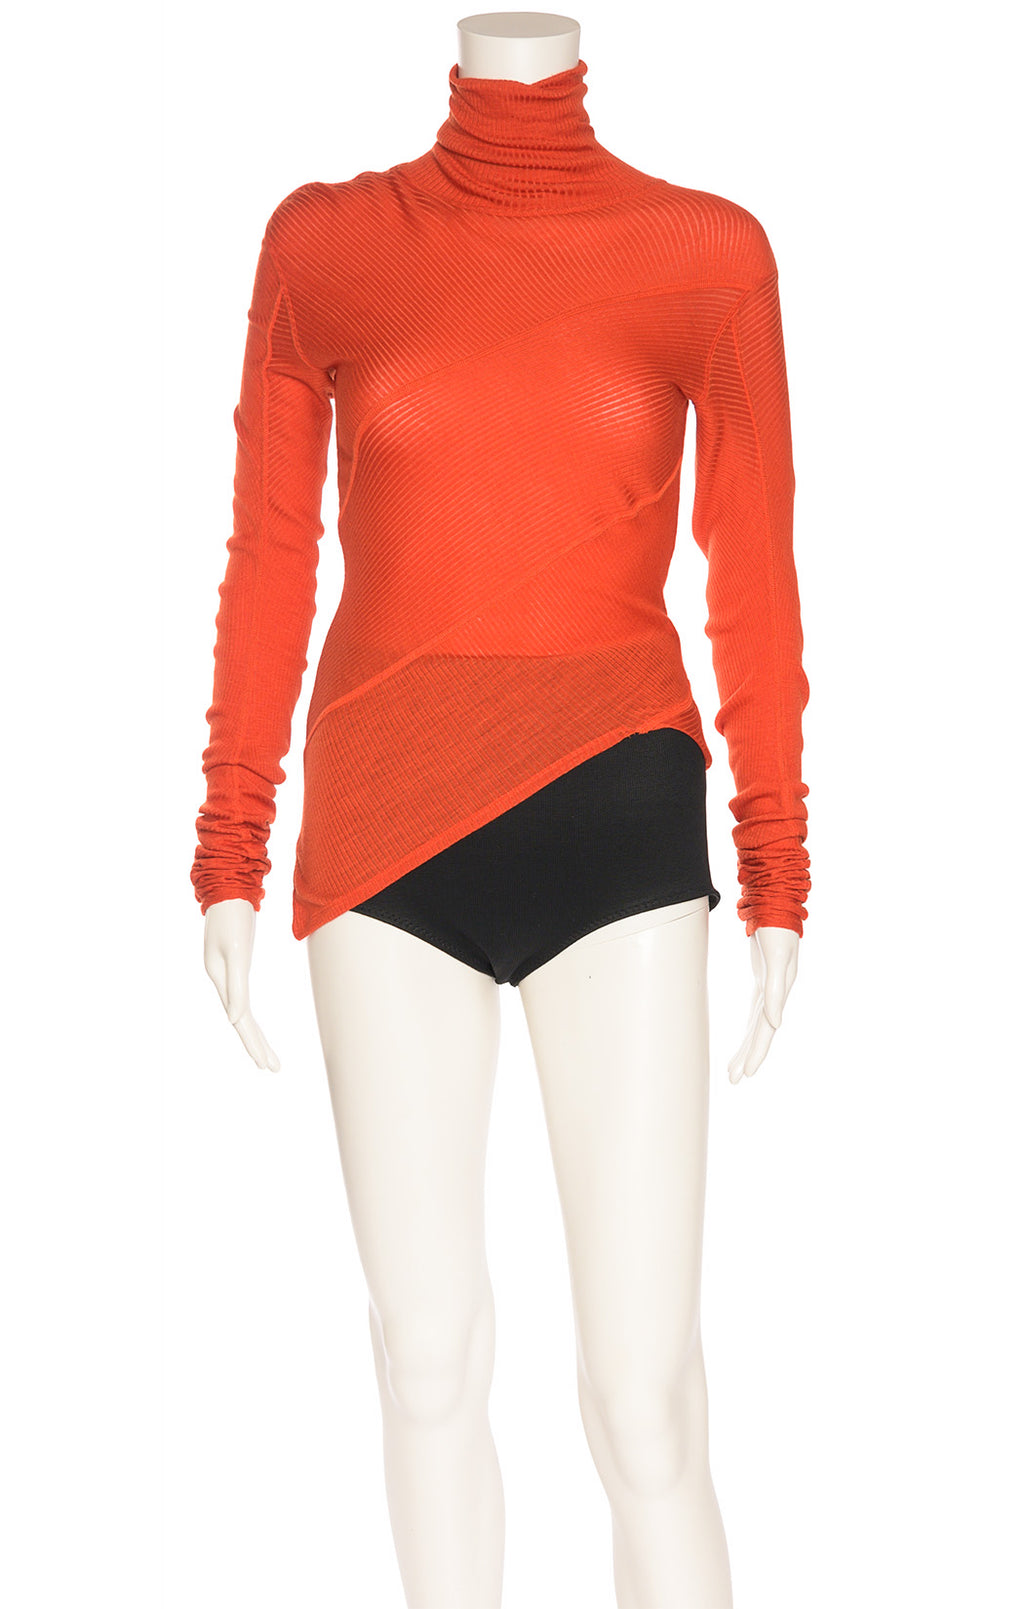 Orange red asymmetrical turtleneck long sleeve top with design